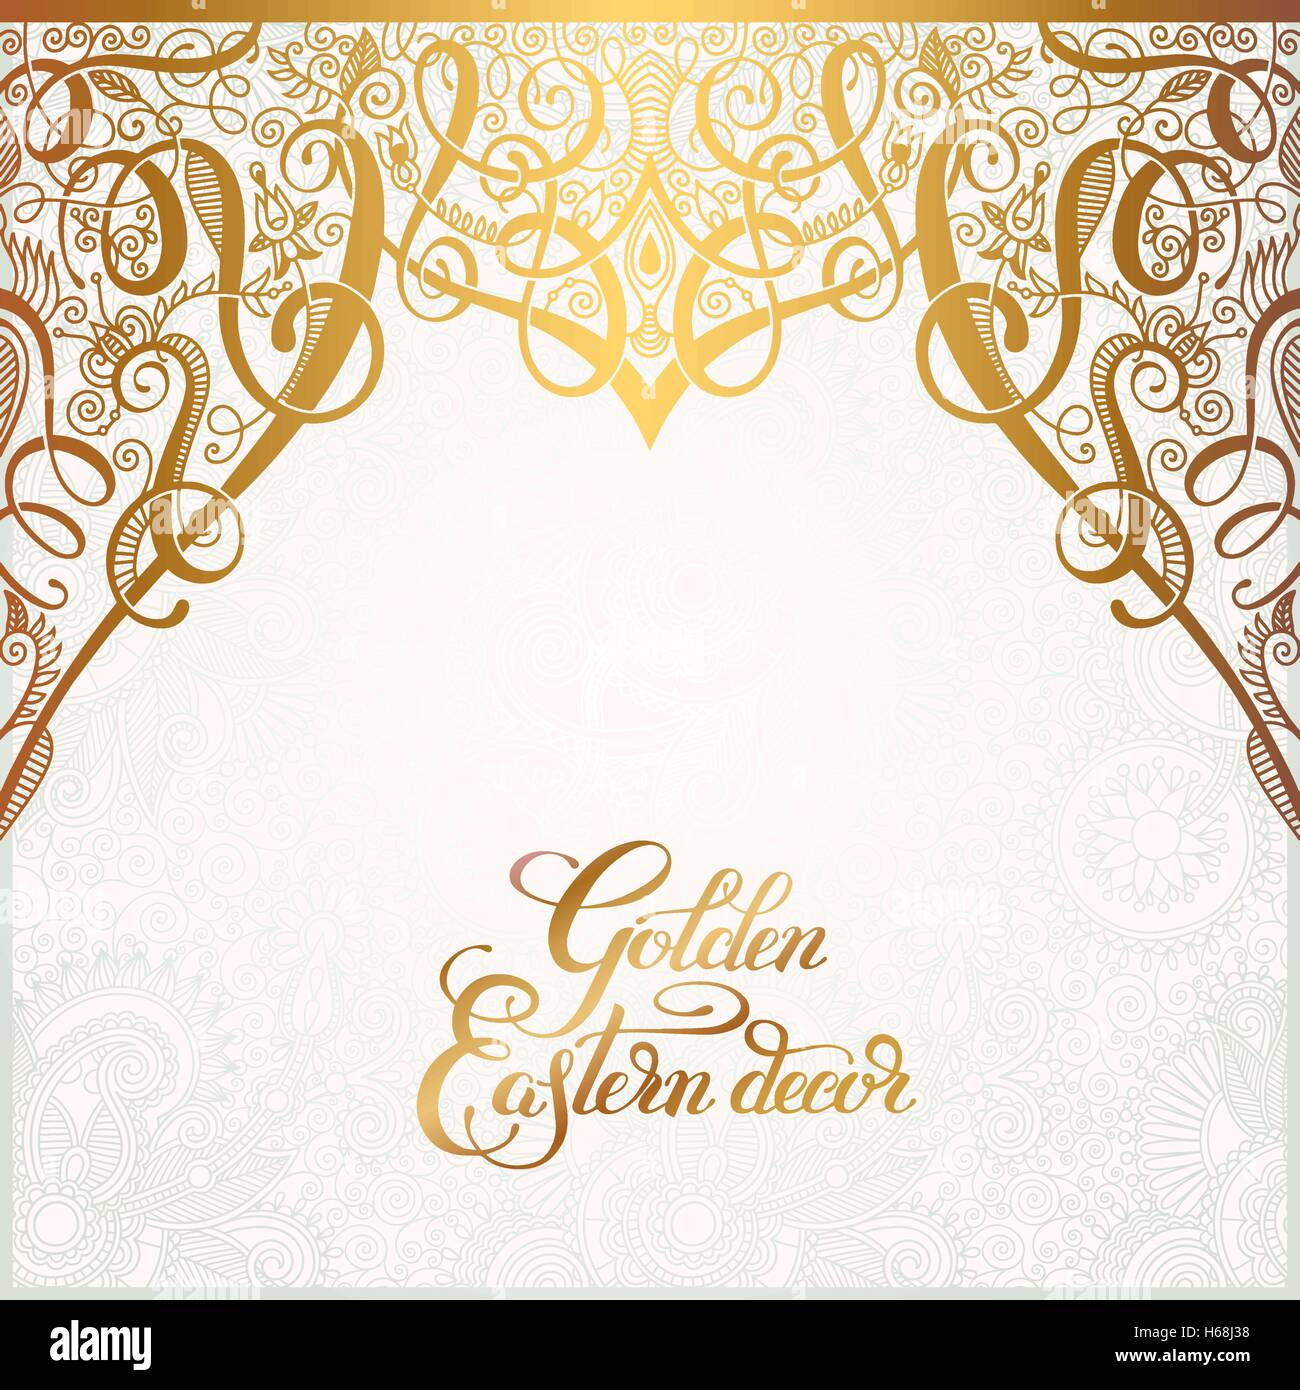 Stock Vector   floral golden eastern decor with place for your text   paisley pa. floral golden eastern decor with place for your text  paisley pa